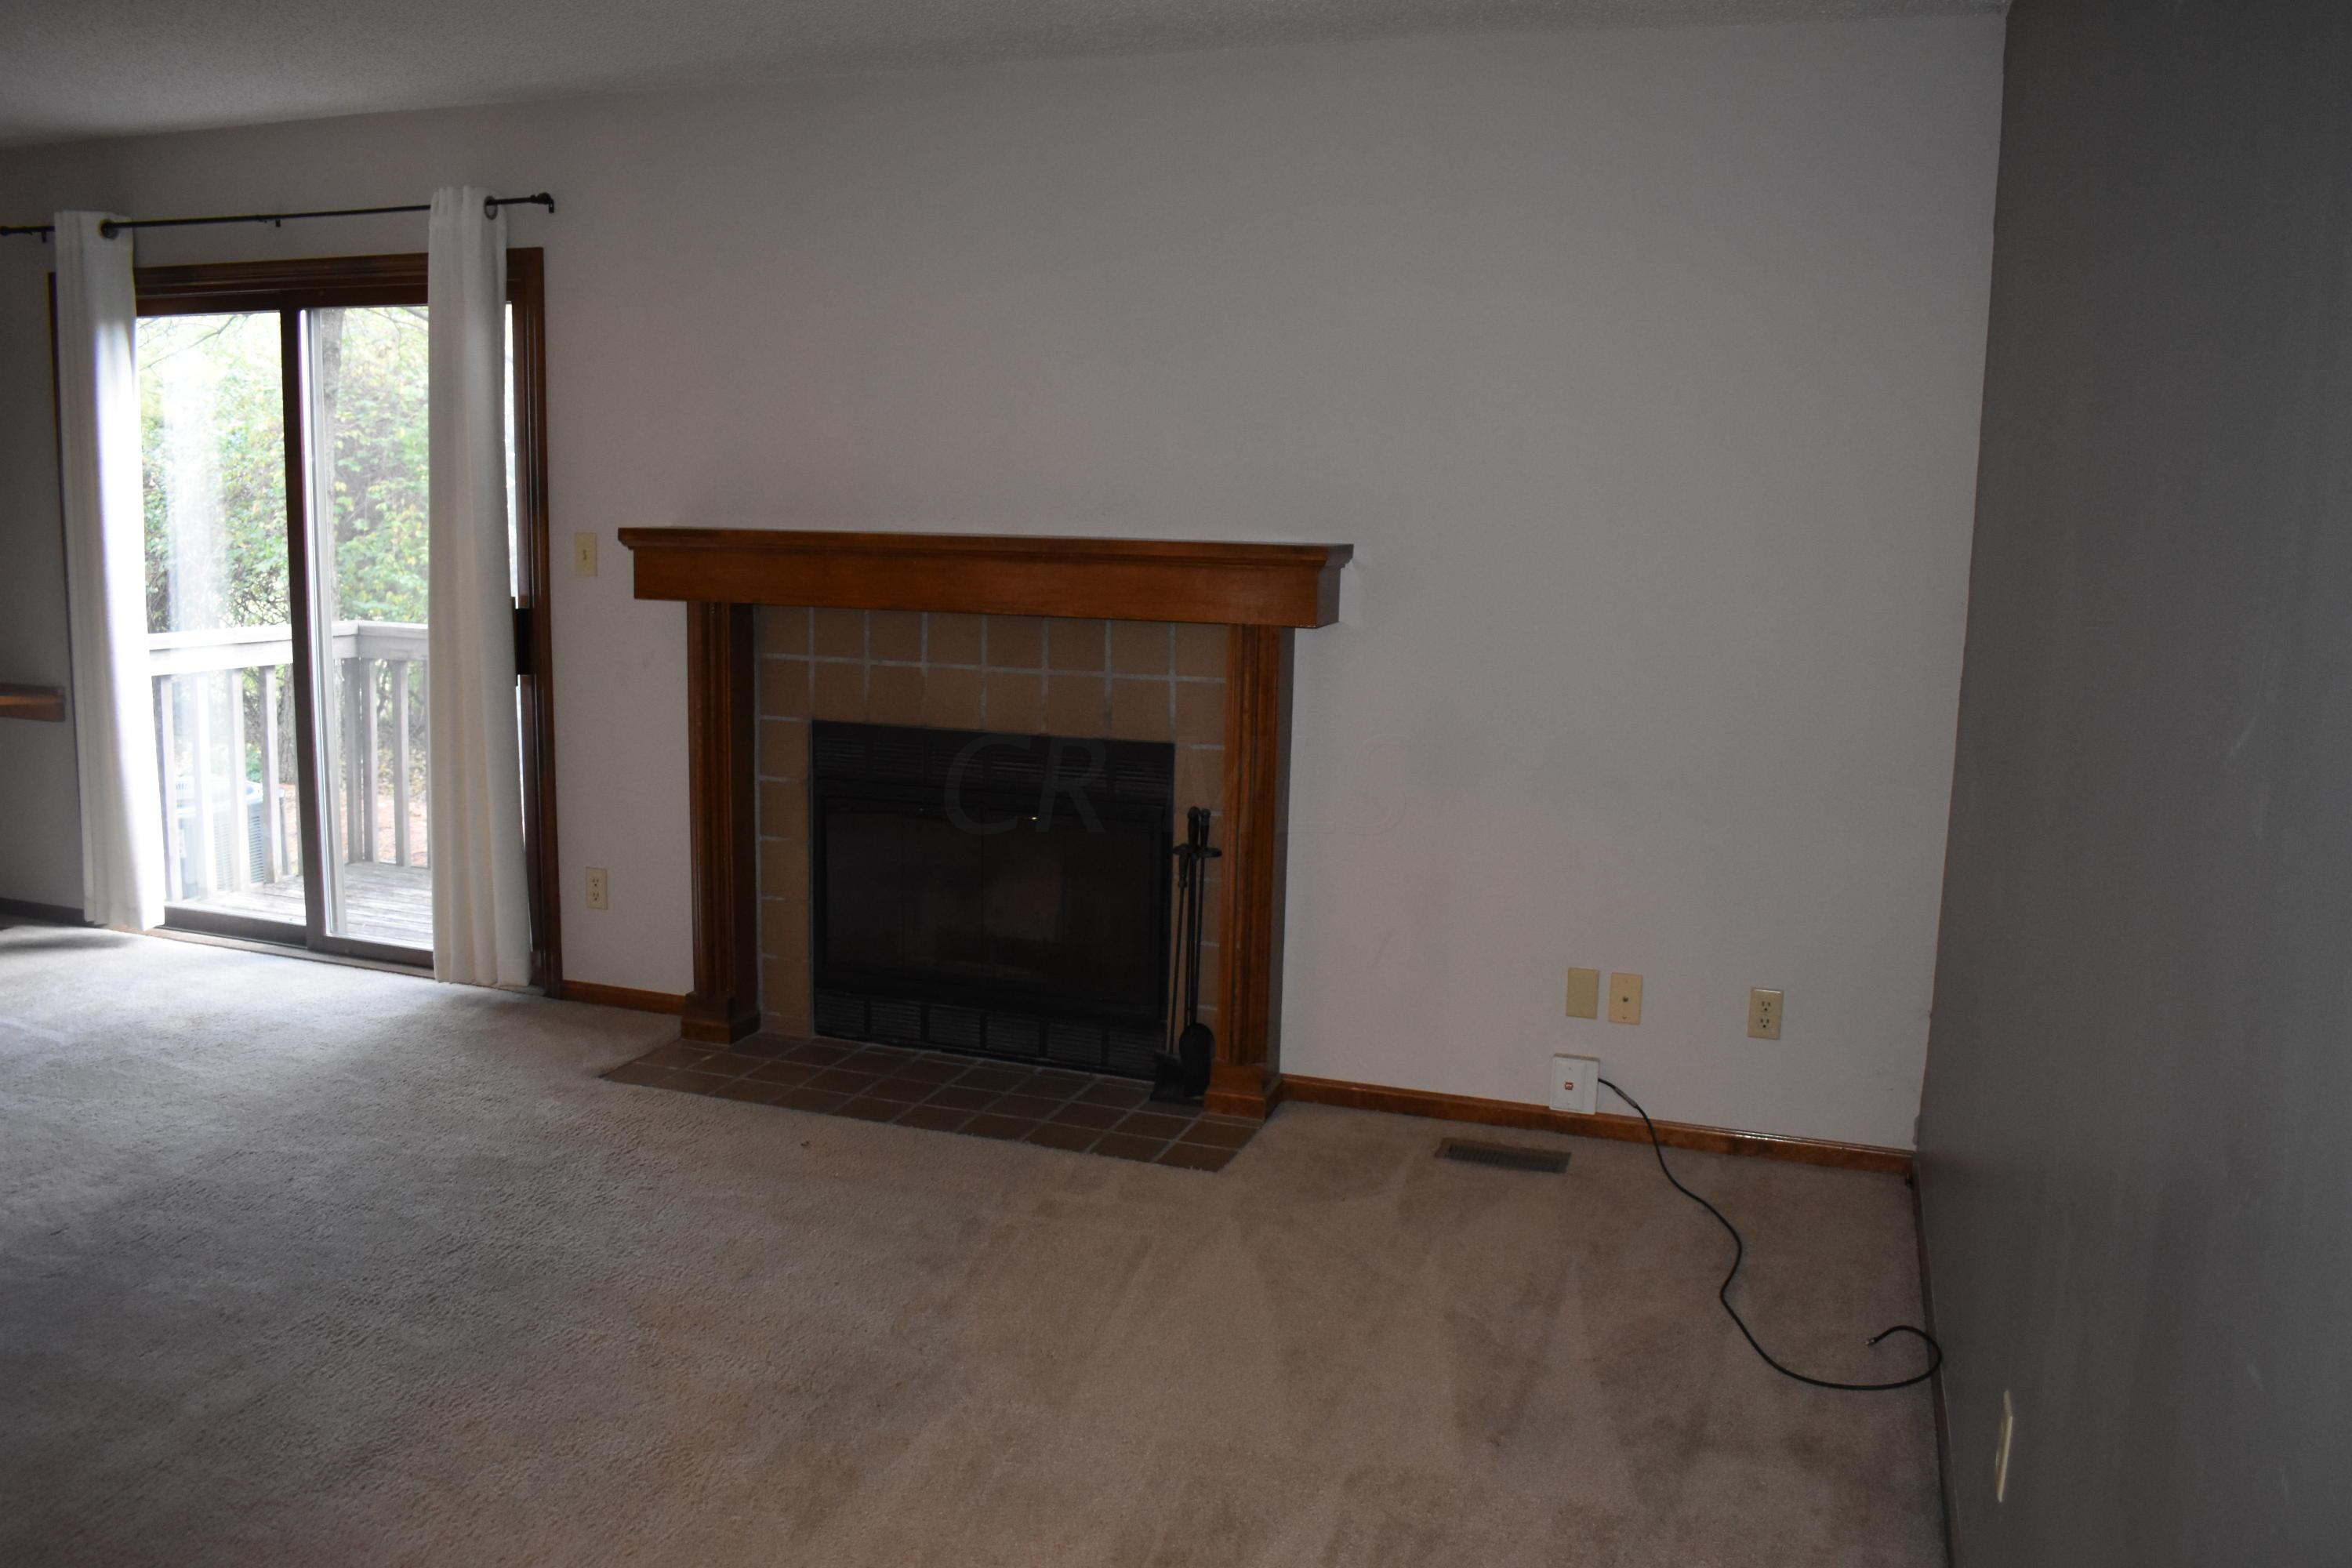 6673 Willow Grove Place, Dublin, Ohio 43017, 2 Bedrooms Bedrooms, ,2 BathroomsBathrooms,Residential,For Sale,Willow Grove,220040504